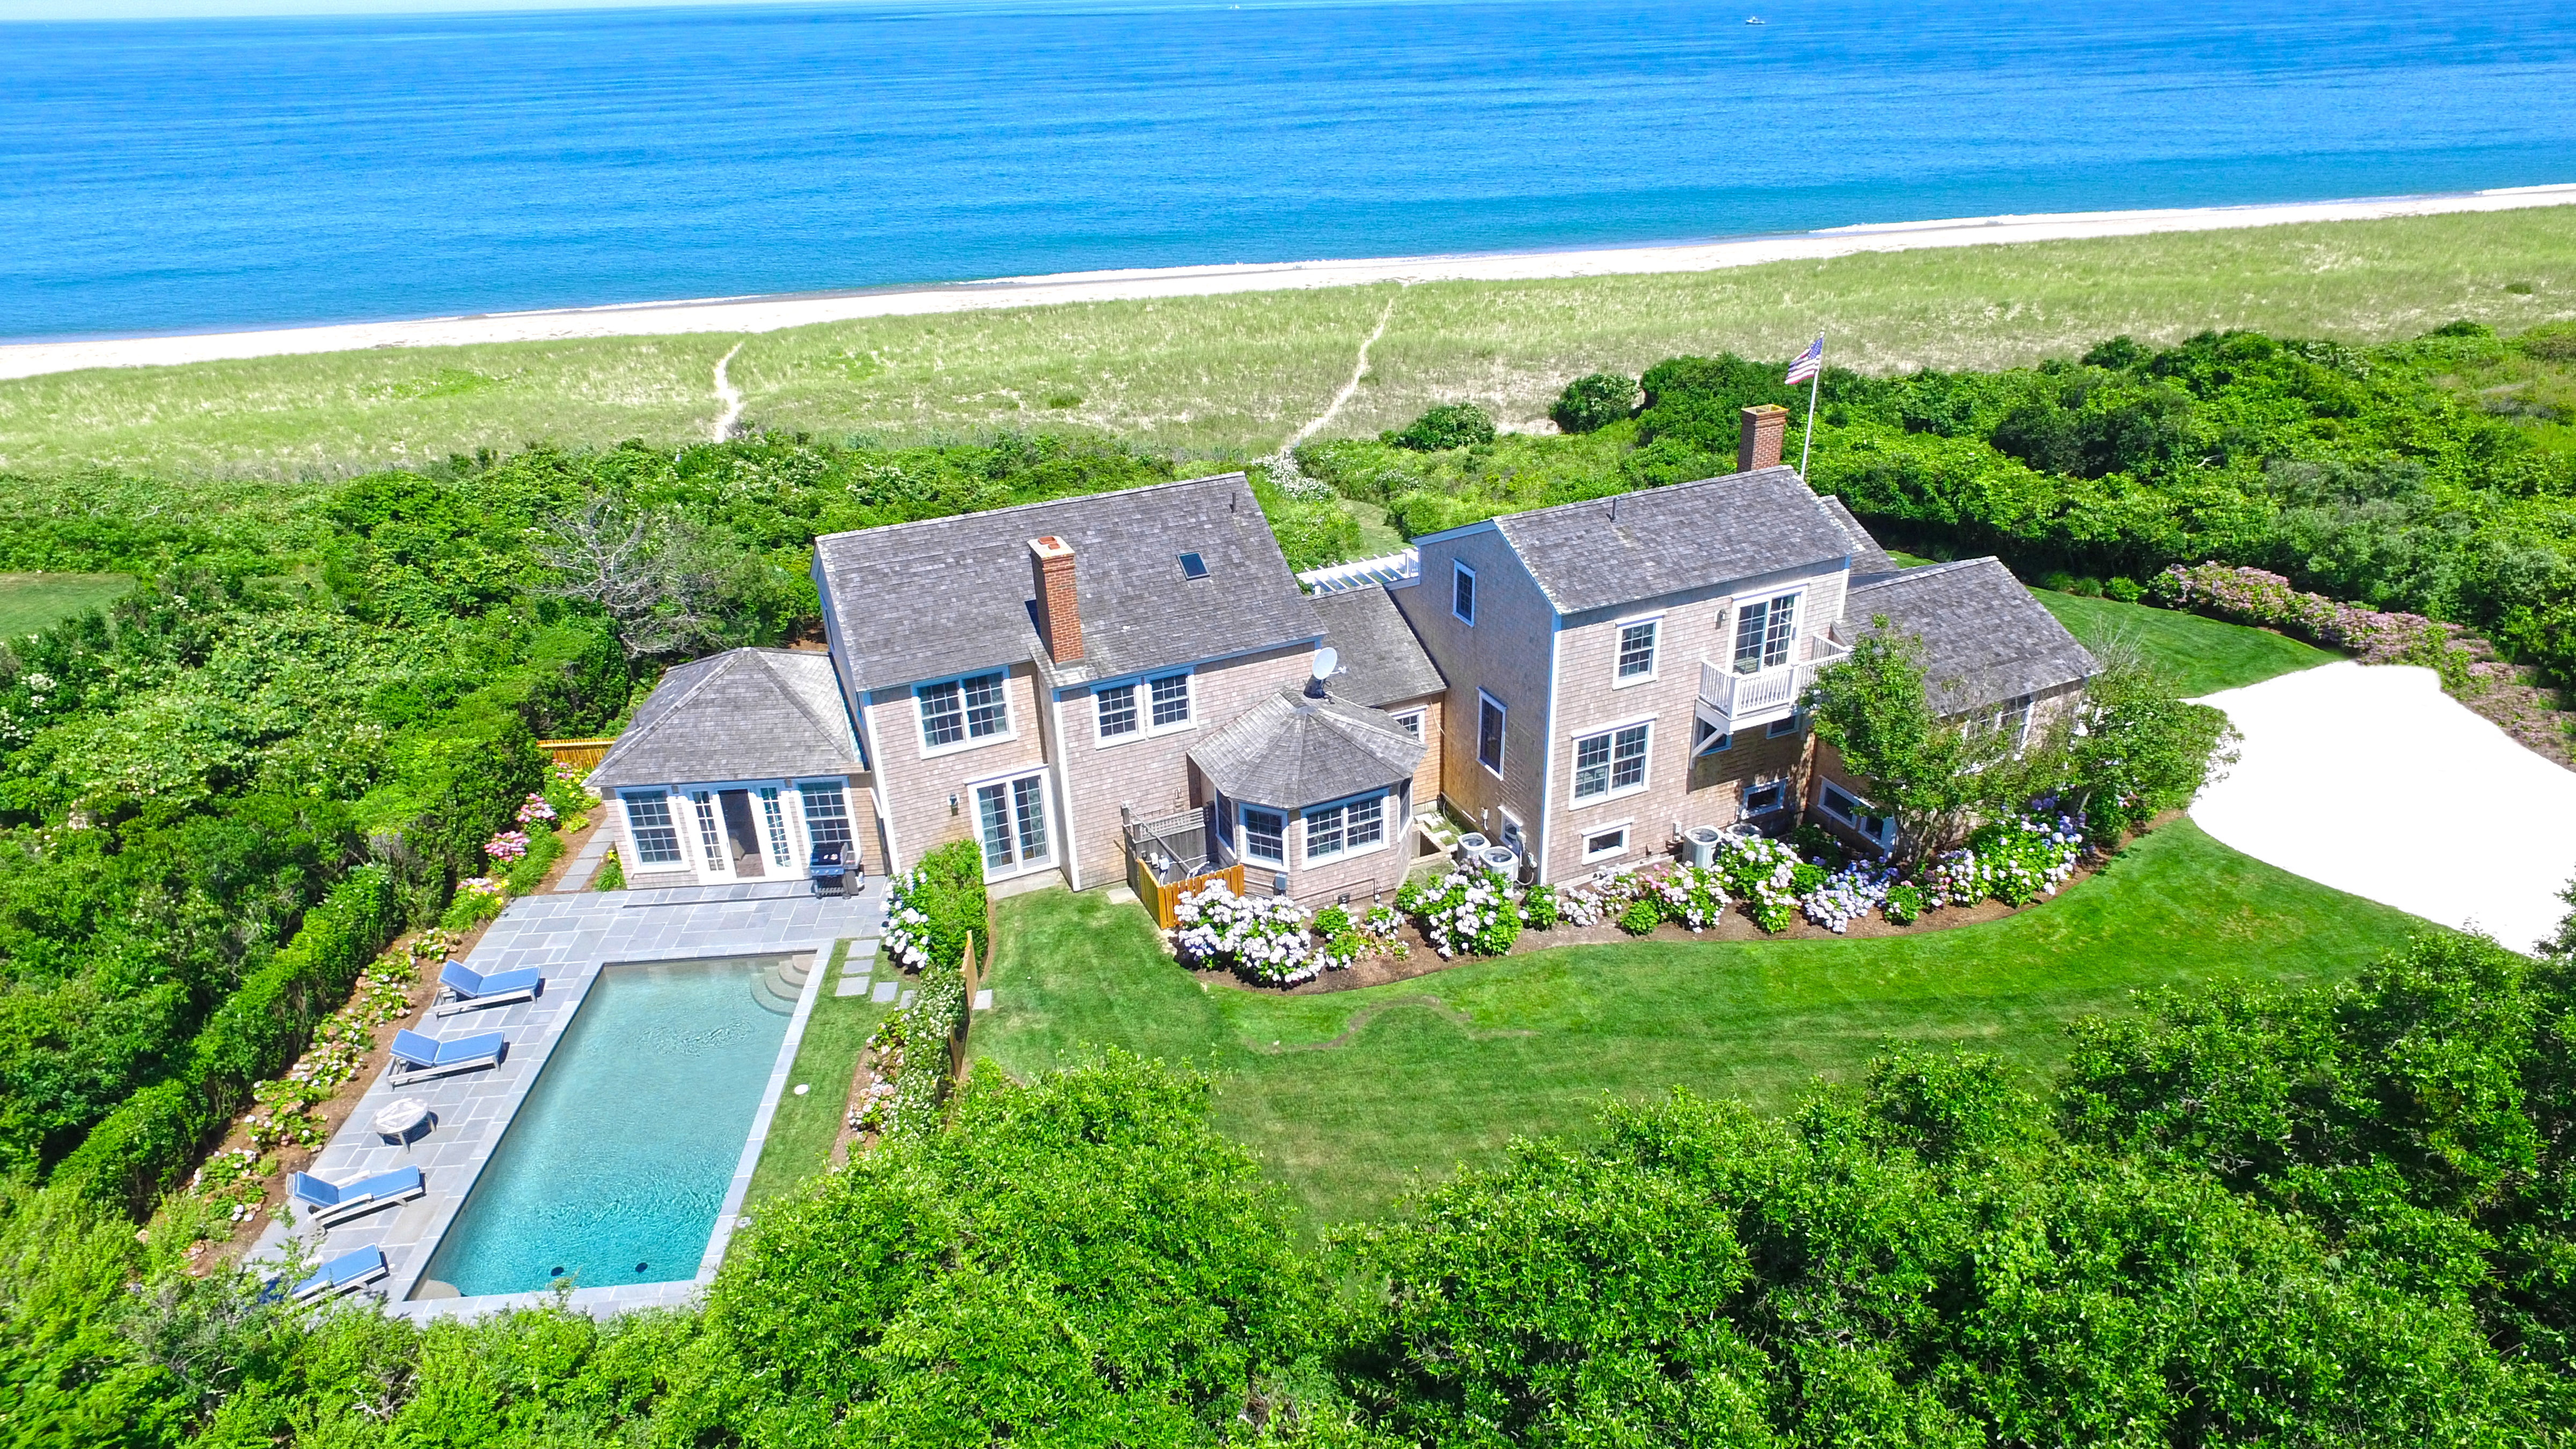 67 Squam Road, Nantucket, MA, USA|Squam | sale